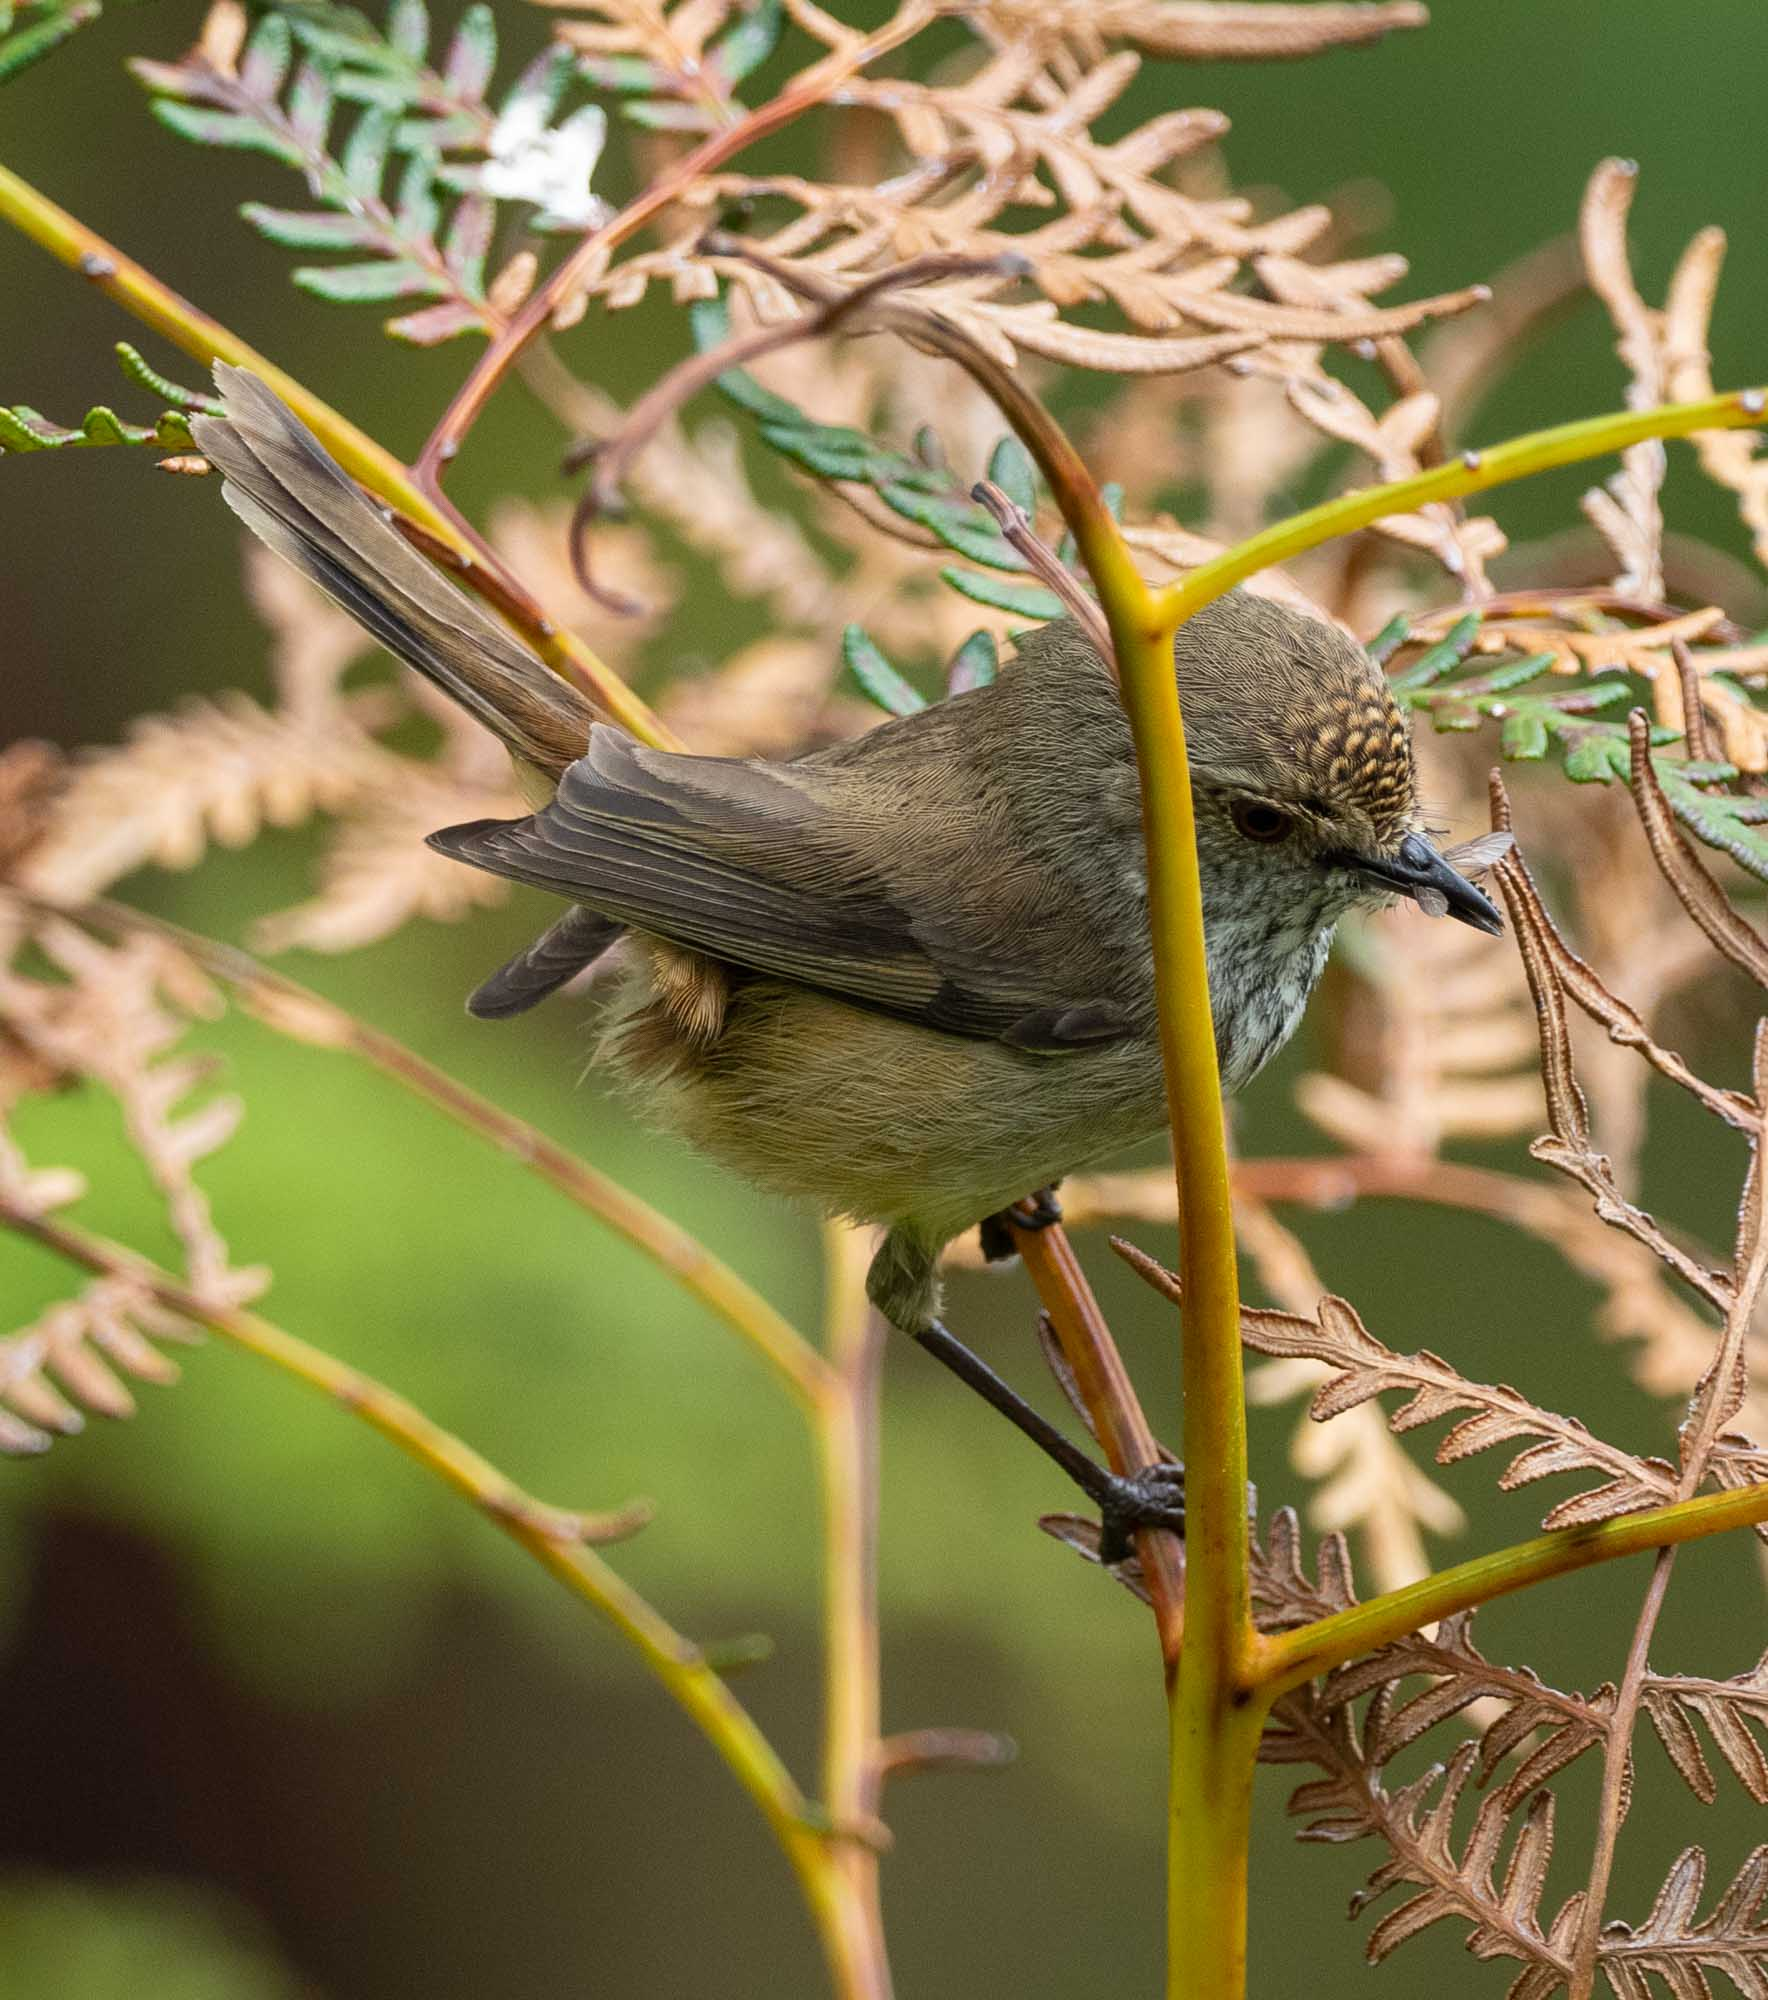 Inland Thornbill - beak full of food for its young